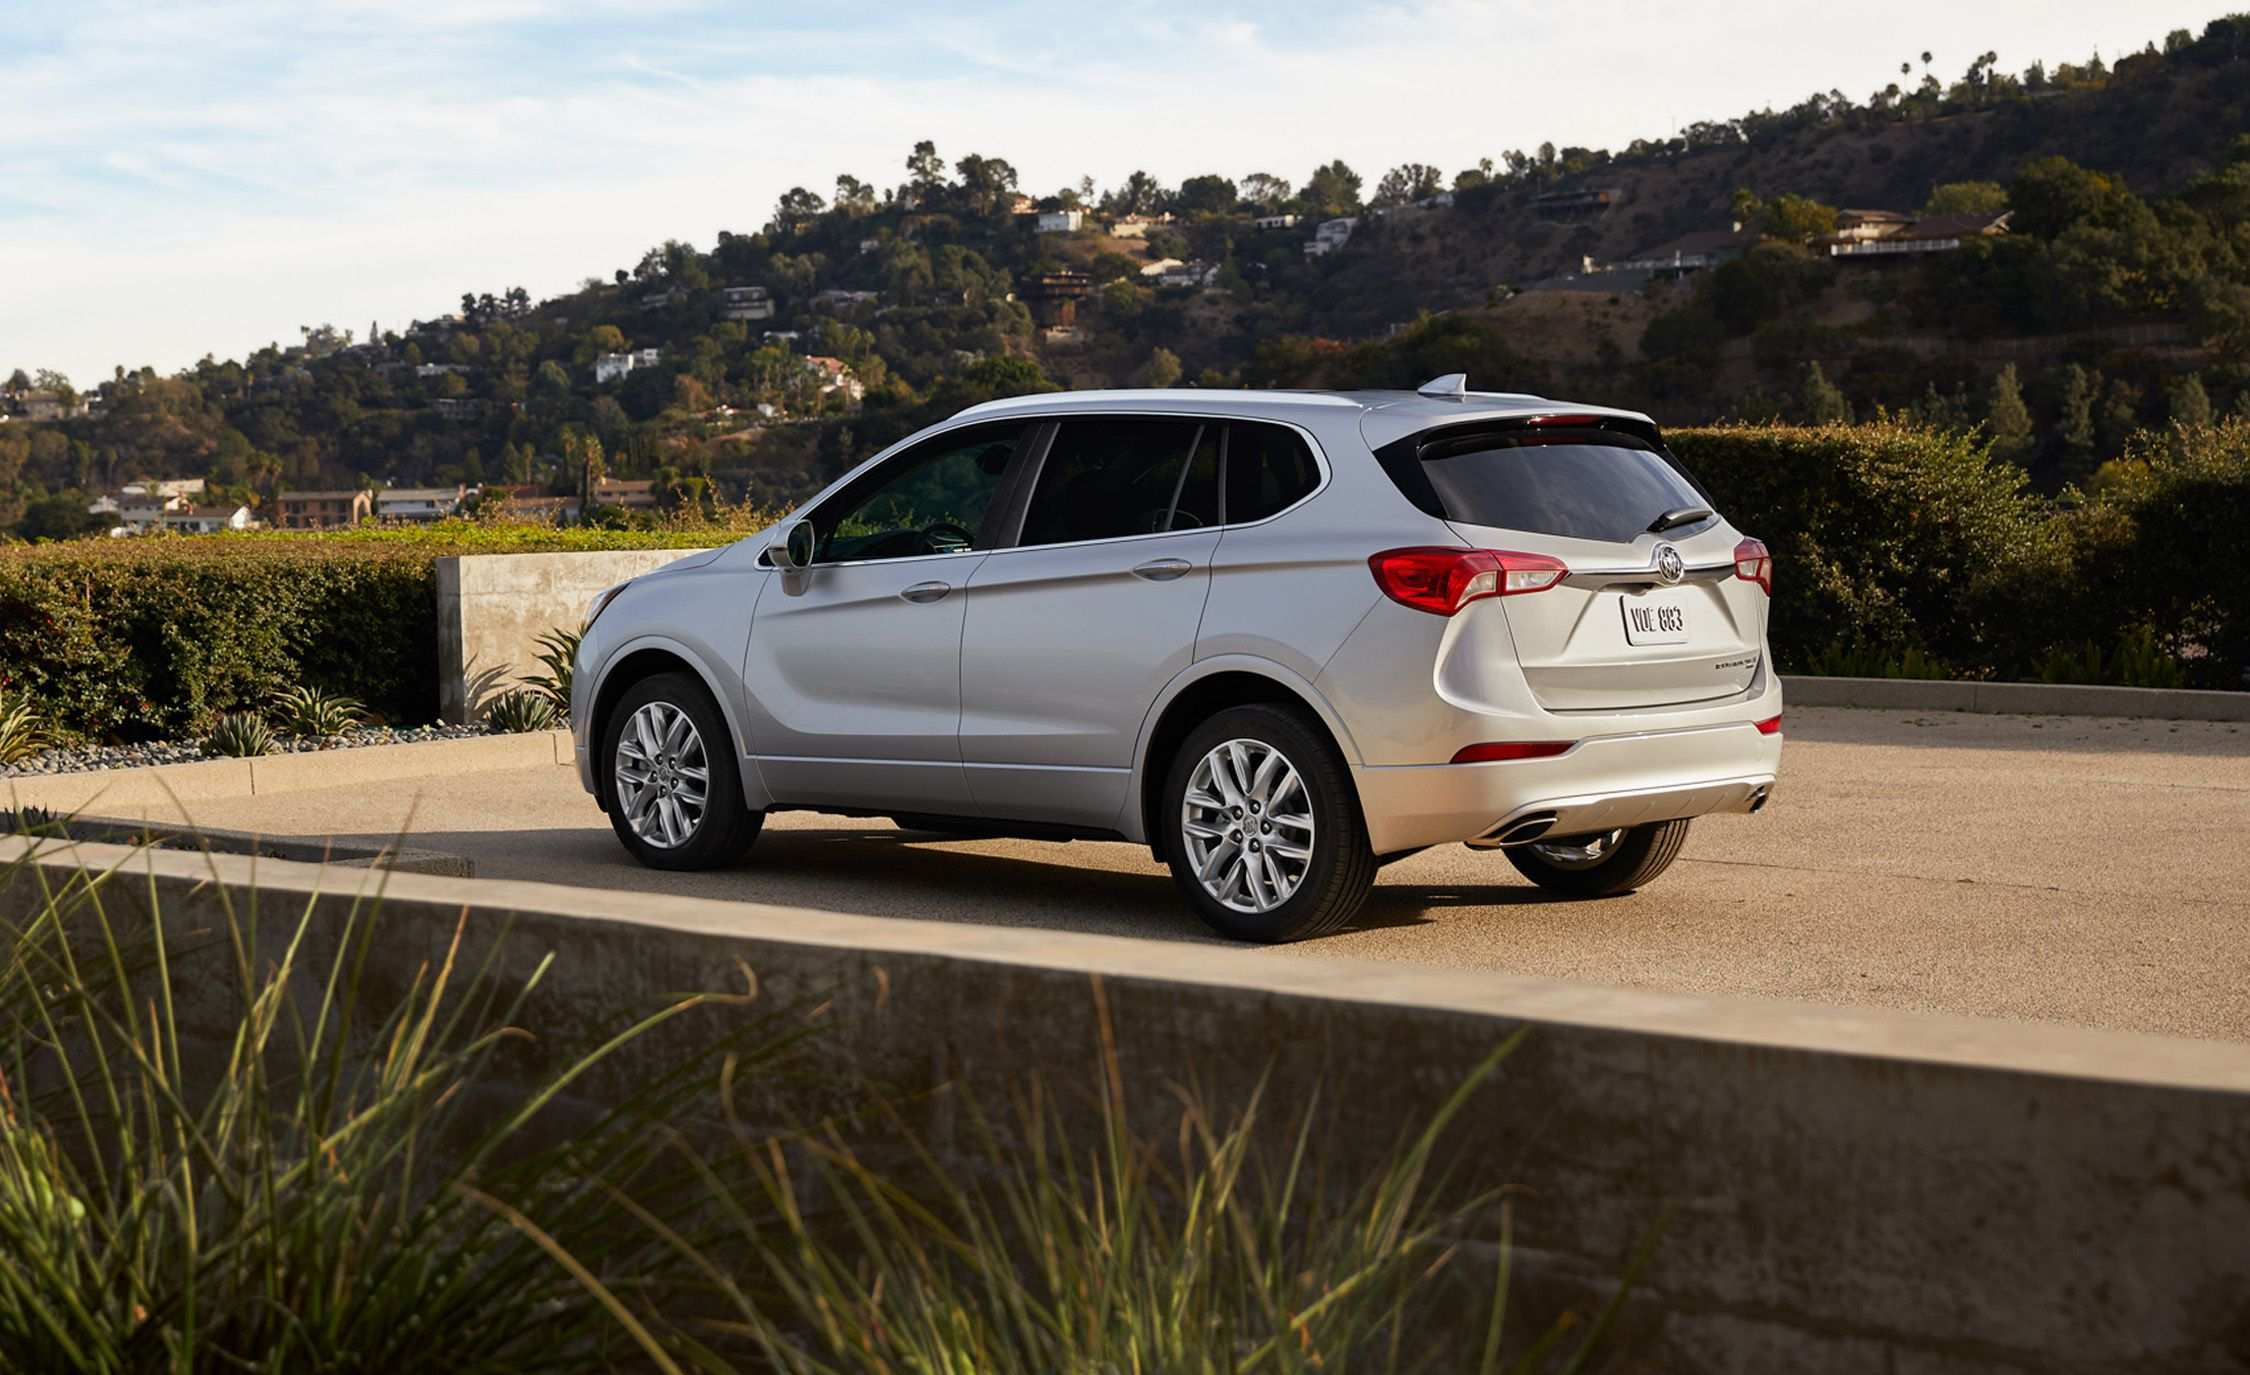 92 Best Review 2020 Buick Envision Changes Style with 2020 Buick Envision Changes